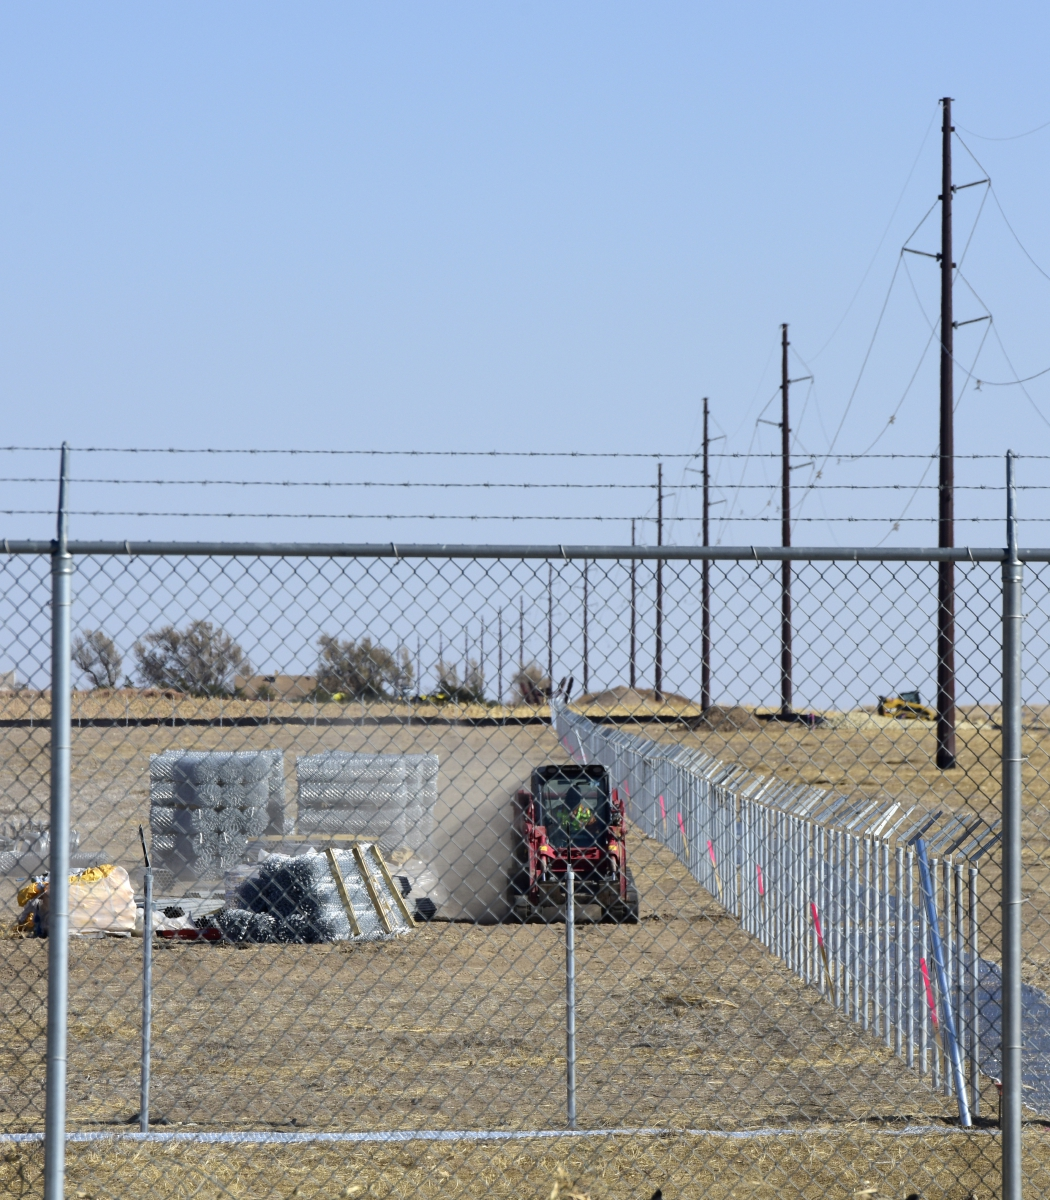 A worker prepares to gather supplies from the laydown area as construction of the perimeter fence continues on Nov. 6, 2019, at the site of the Johnson Corner Solar Project in Stanton County near Johnson City, Kan.